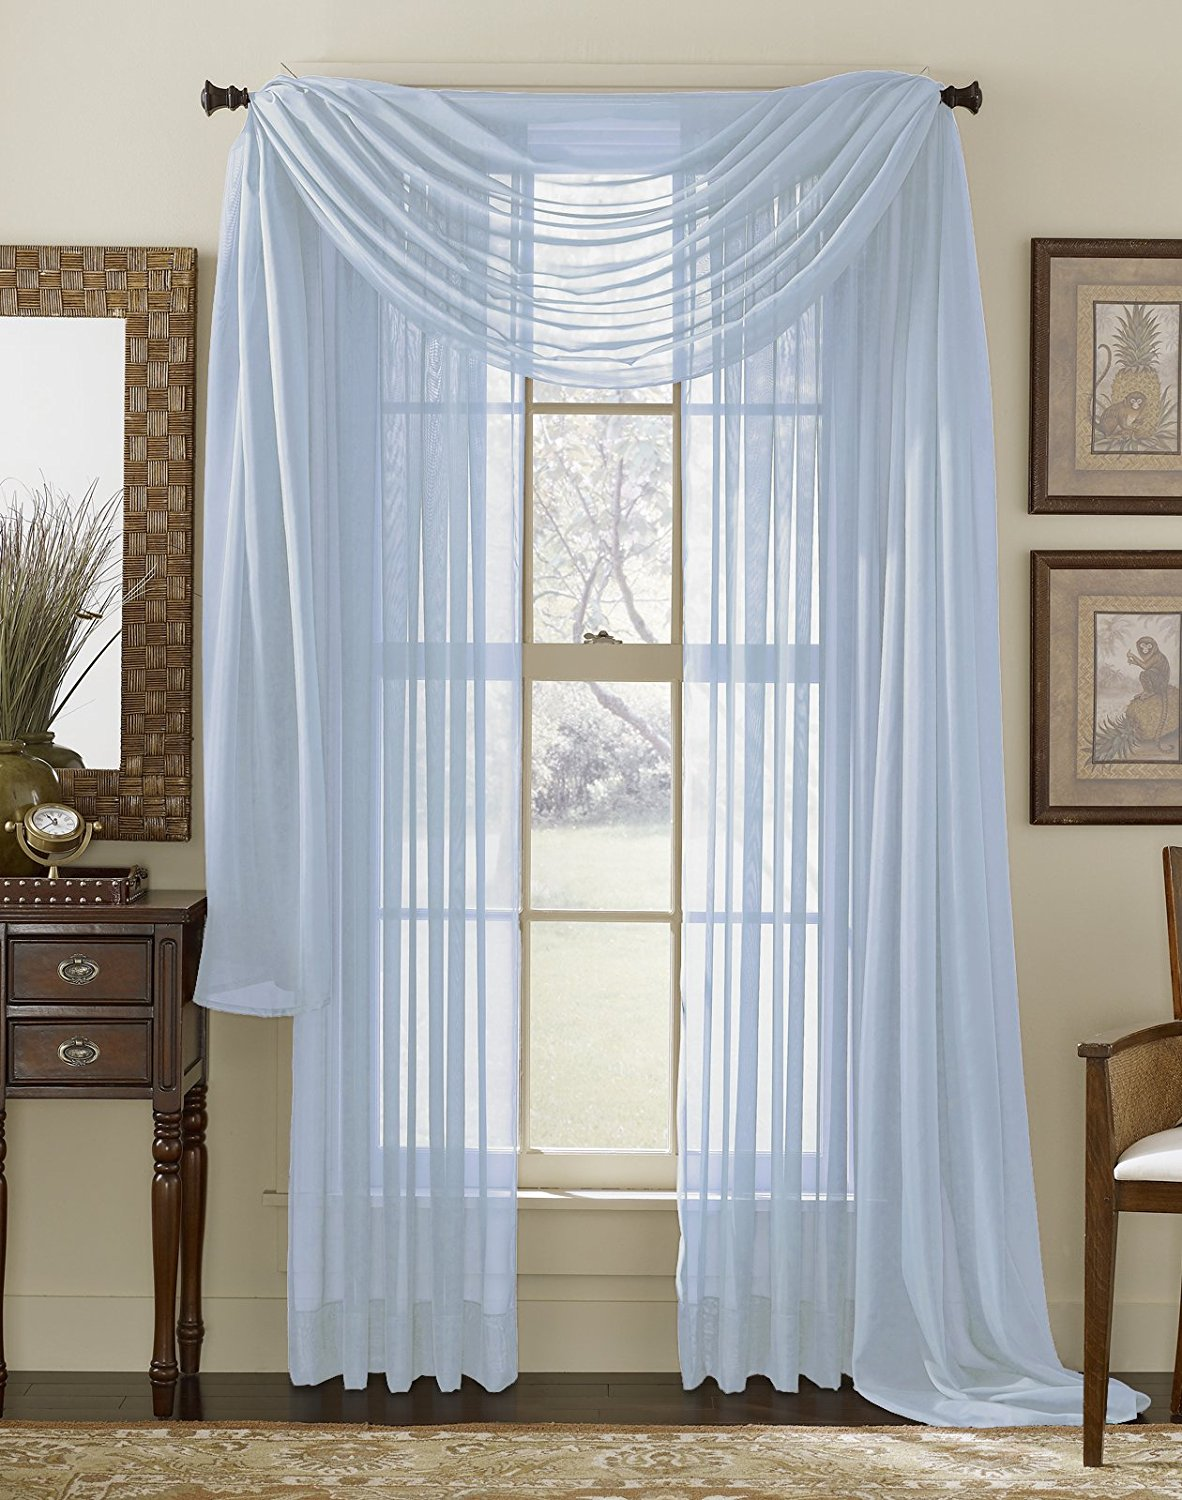 light prepare mesmerizing within awesome curtains for decor interior blackout room sky with blue idea fancy drapes living to regard